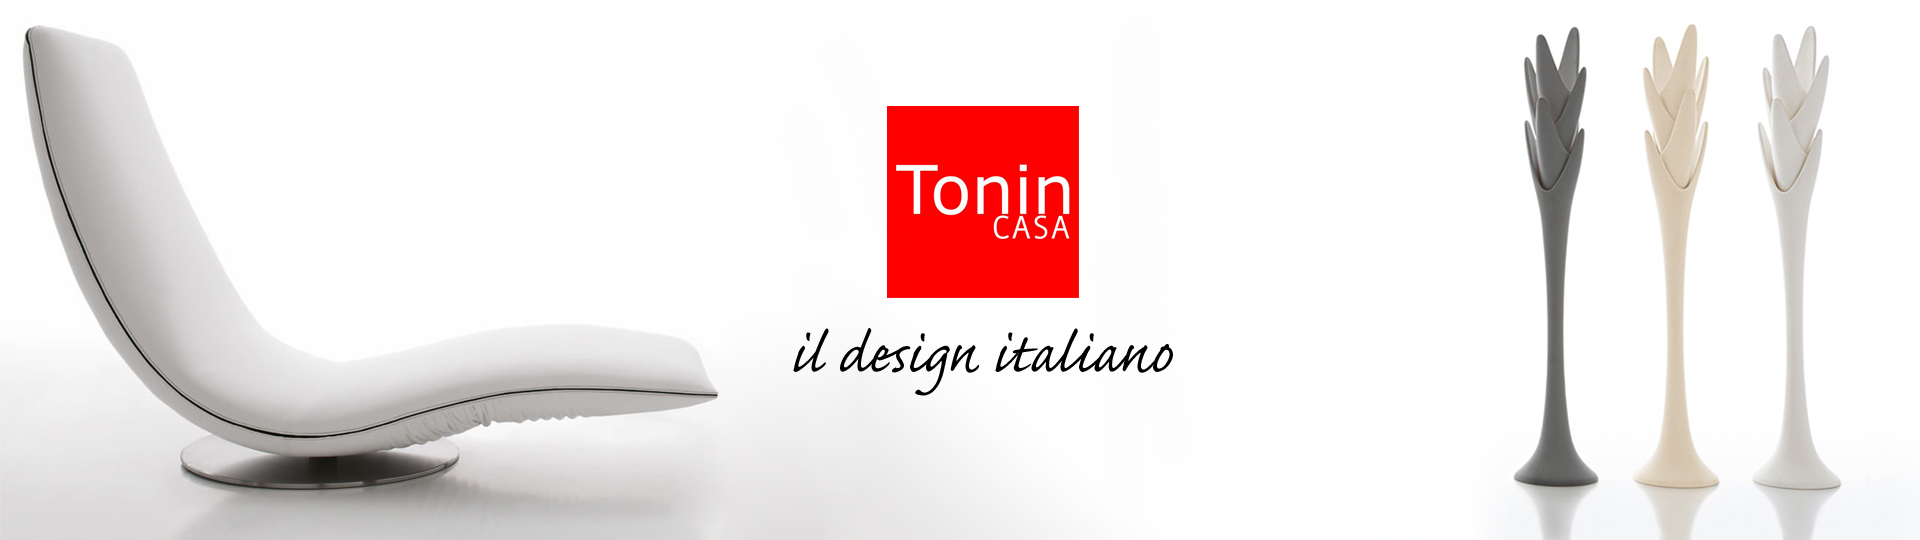 Tonin Casa - design italiano